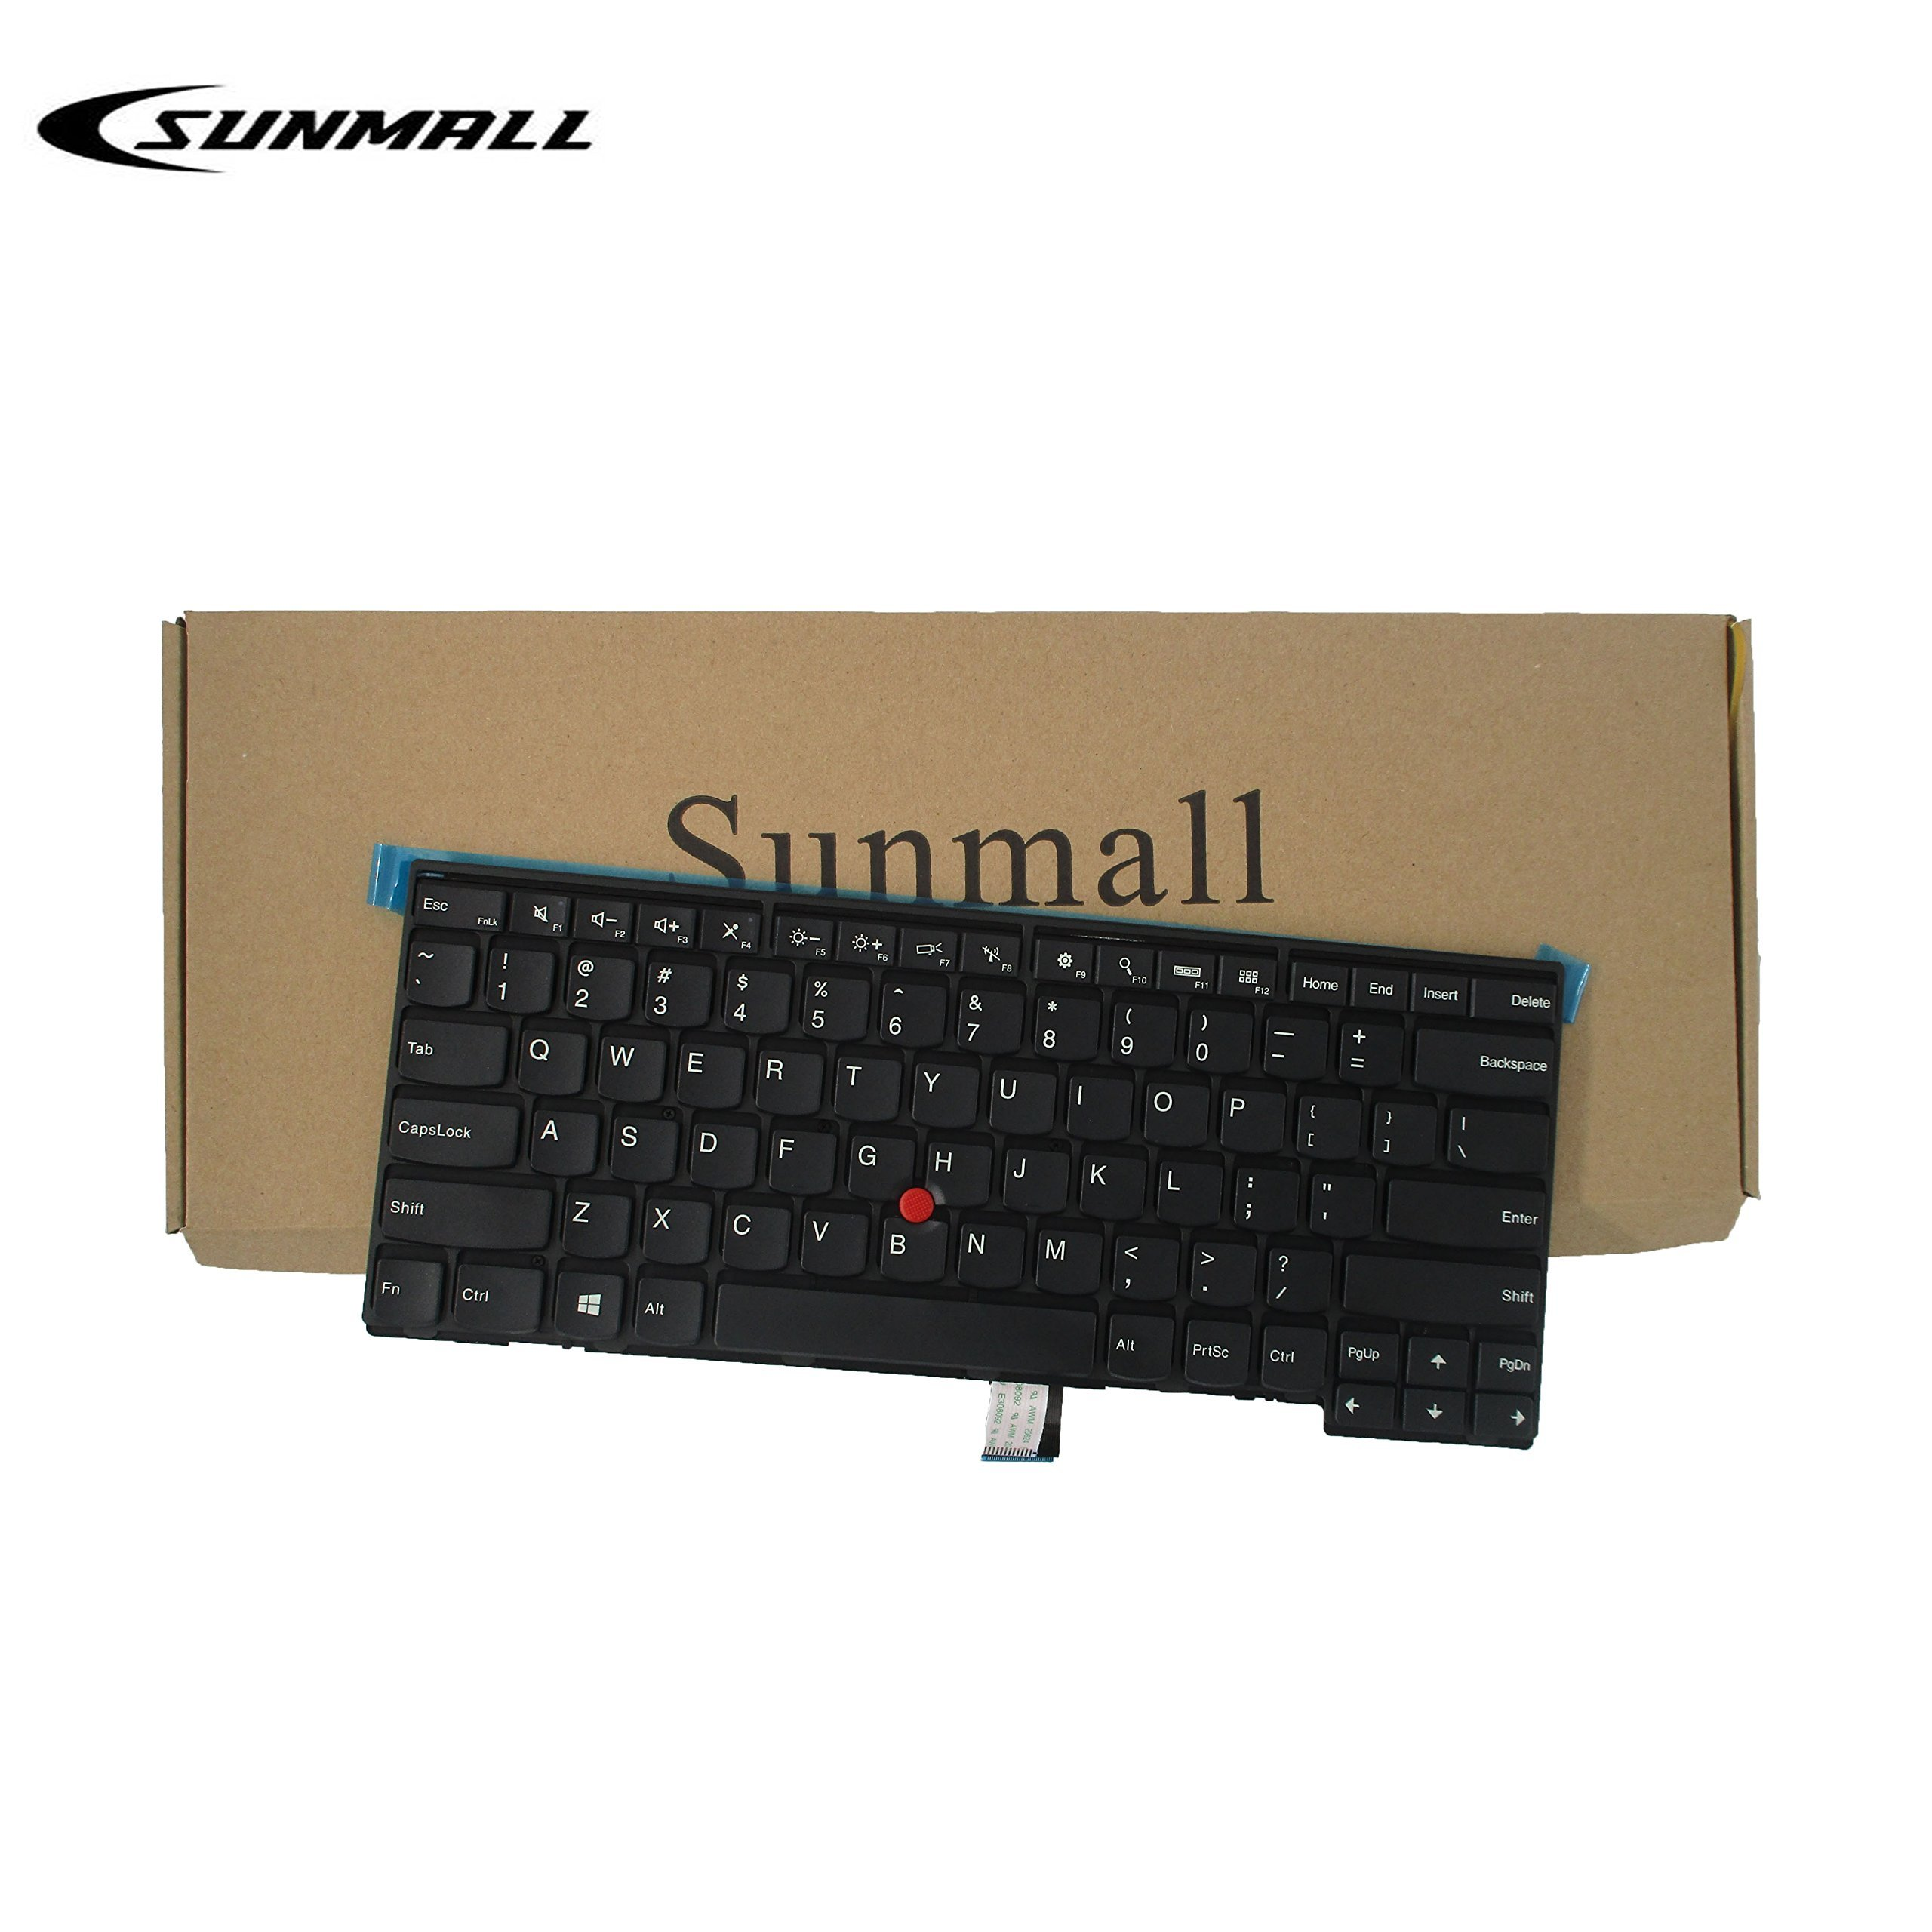 SUNMALL Keyboard Replacement with Frame for Lenovo ThinkPad T431 T431S E431 T440 T440P T440S E440 L440 T450 T450S T460 T460P L450 T440E Series Laptop US Black Layout(6 Months Warranty) ... by SUNMALL